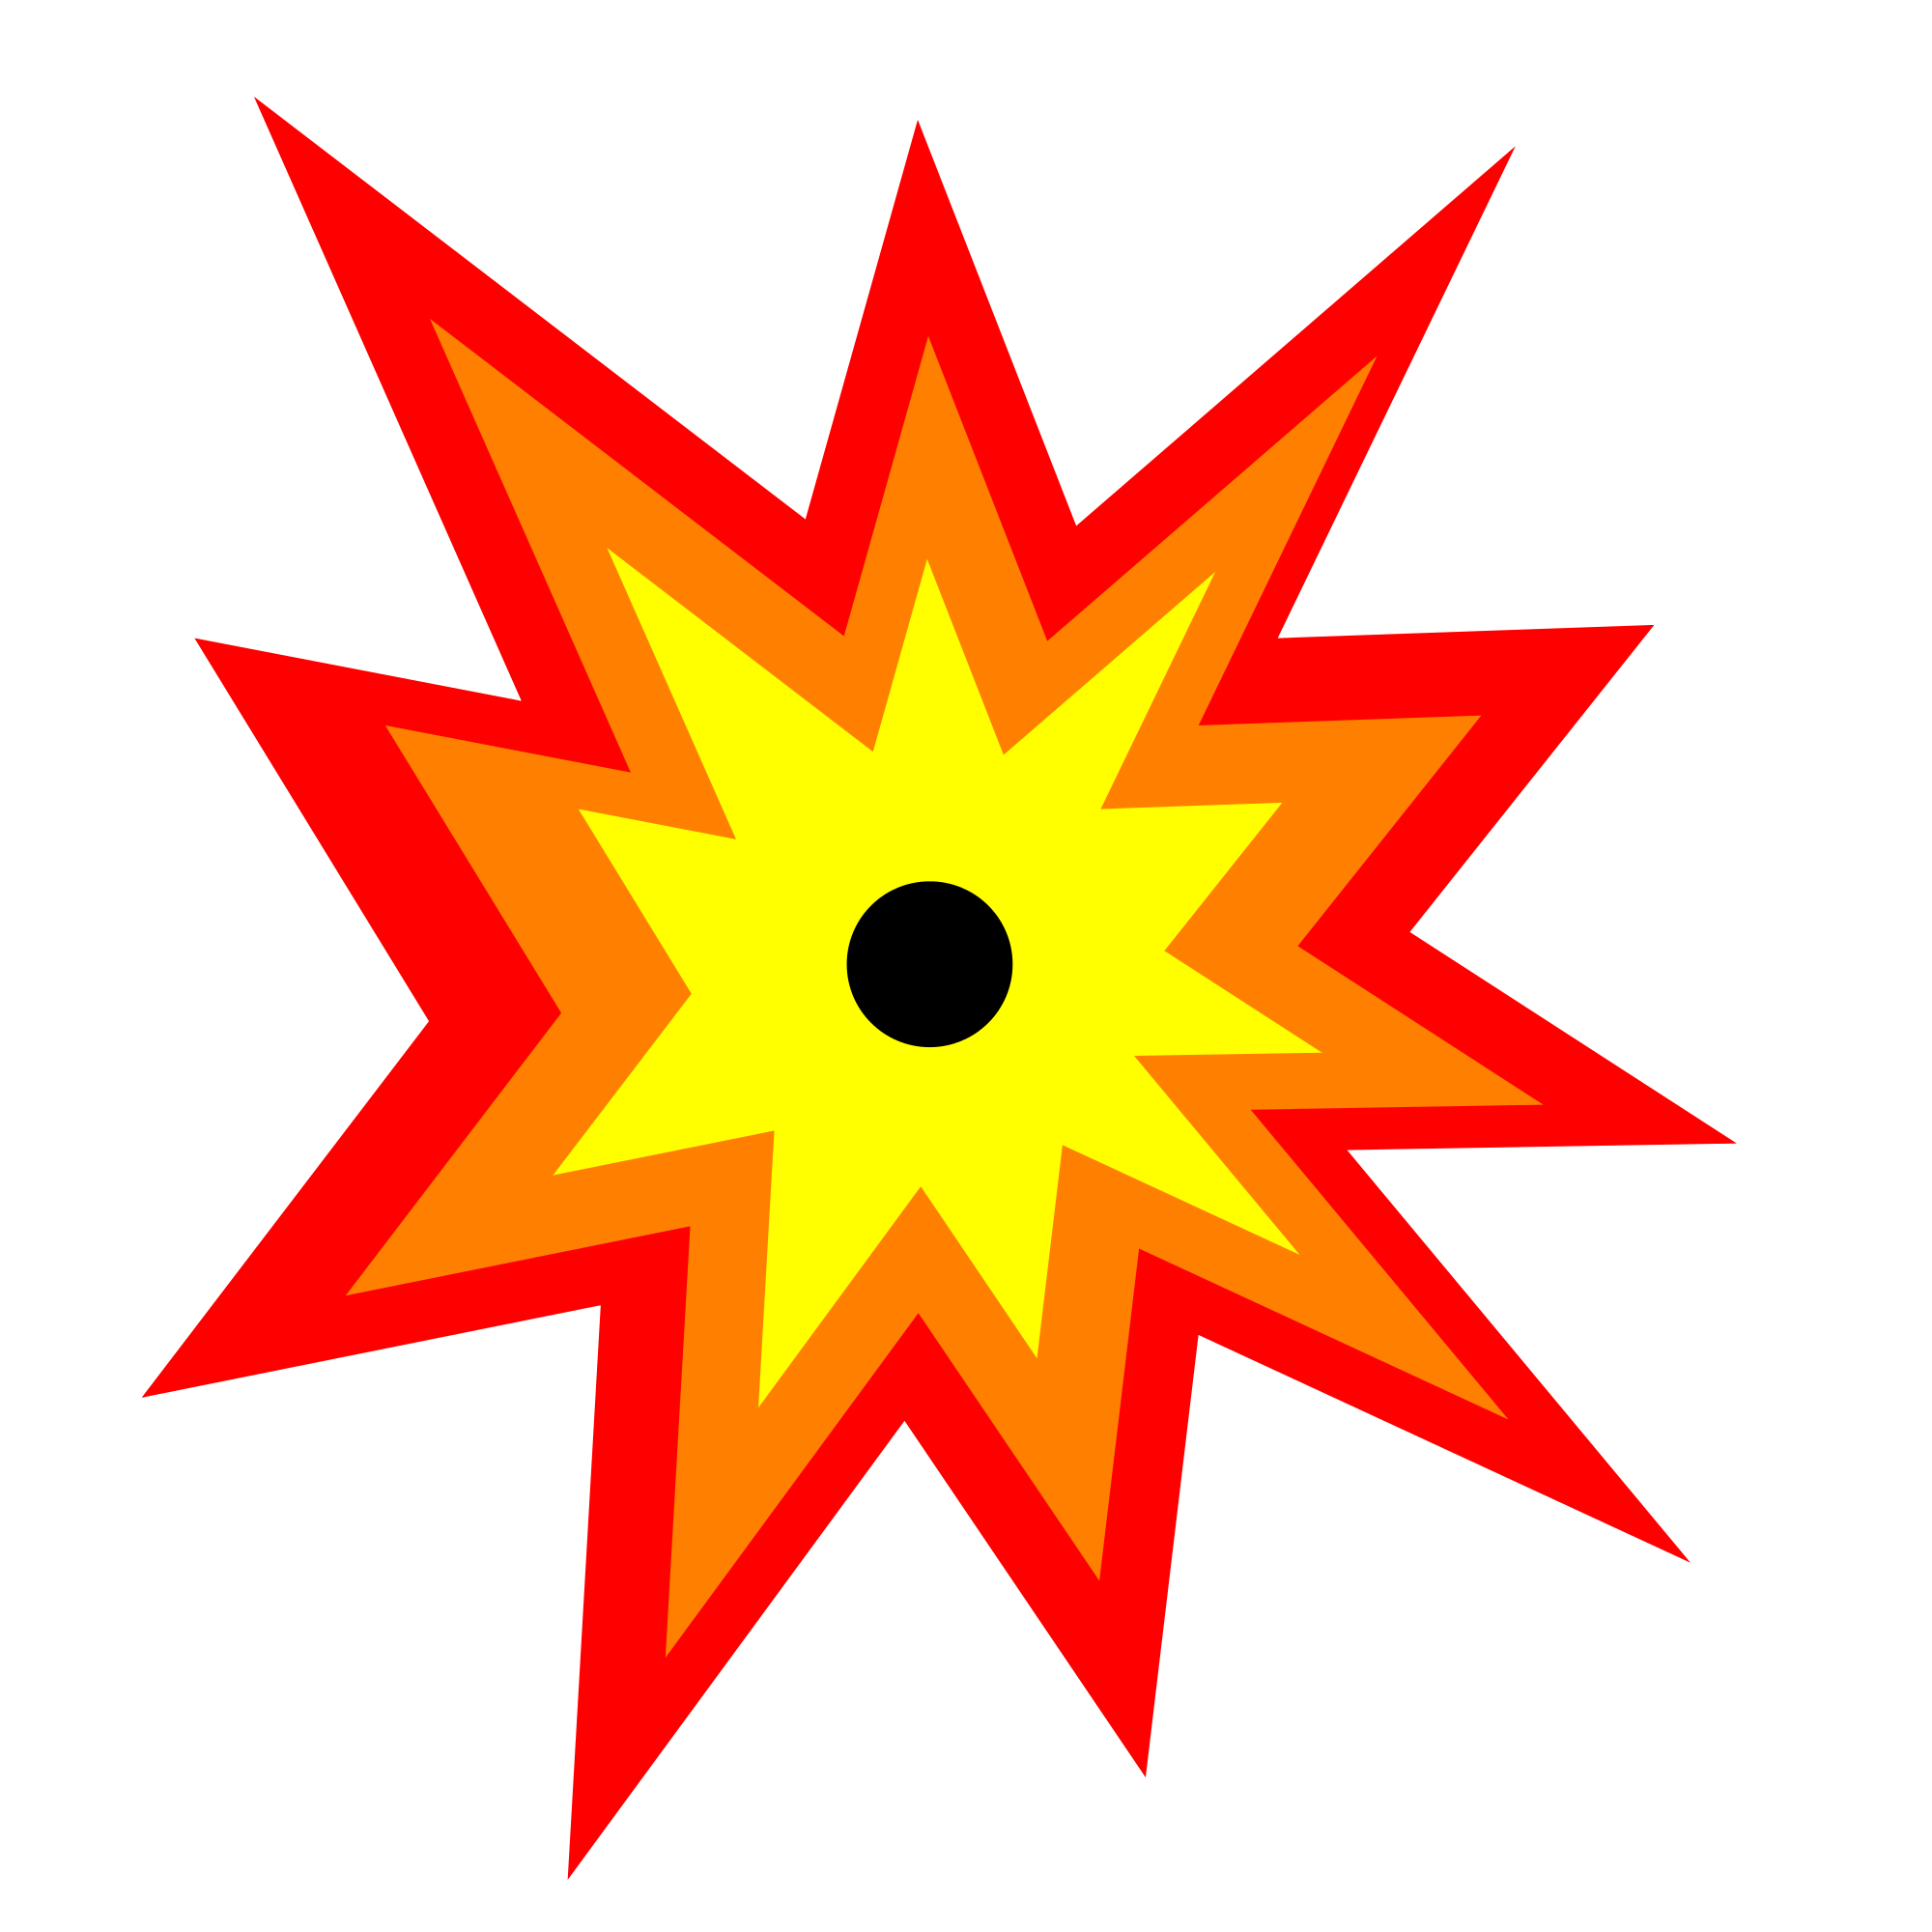 Explosion svg #19, Download drawings